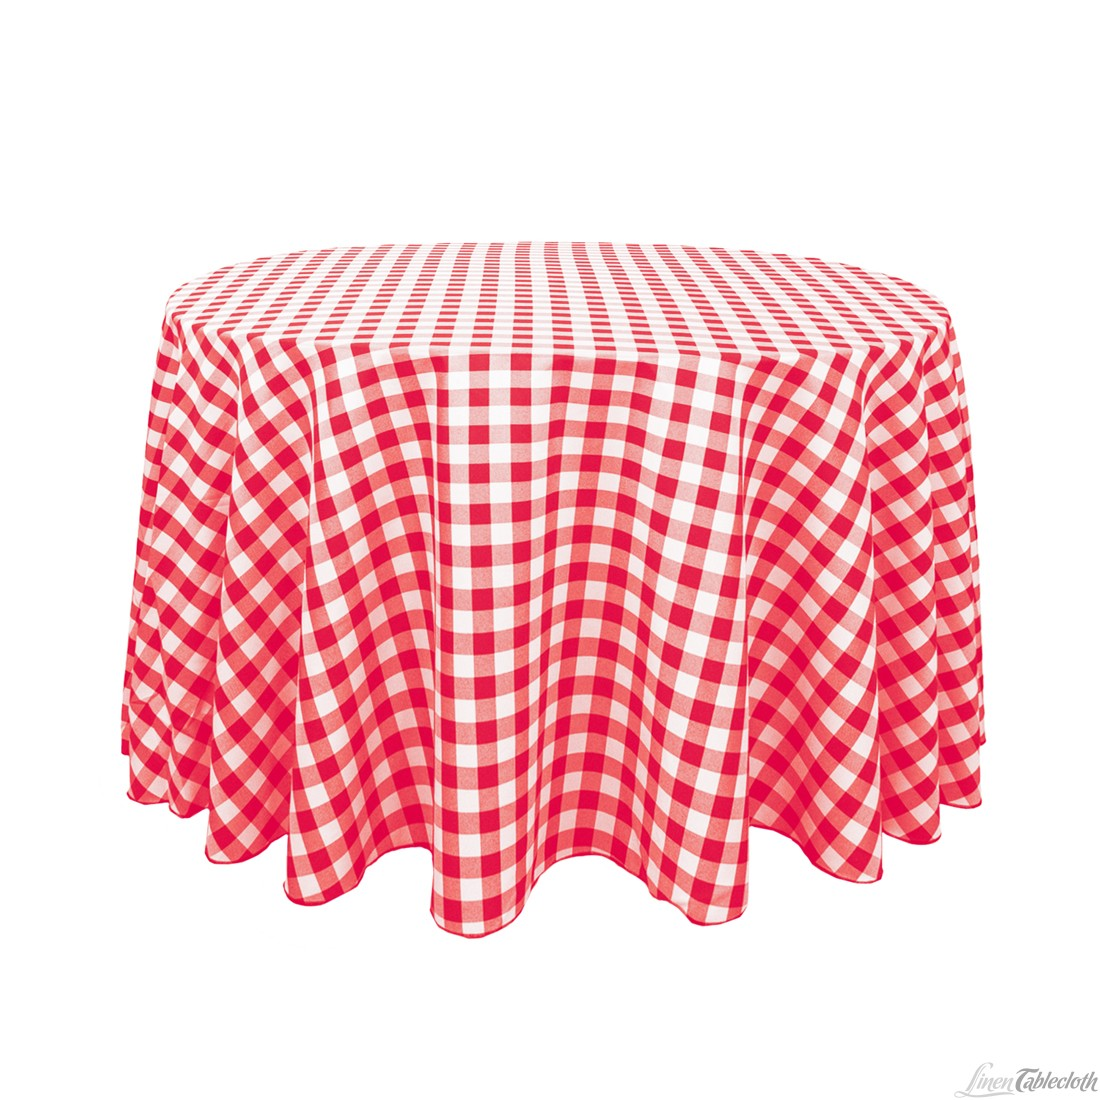 Free Pink Tablecloth Cliparts, Download Free Clip Art, Free ... png free download